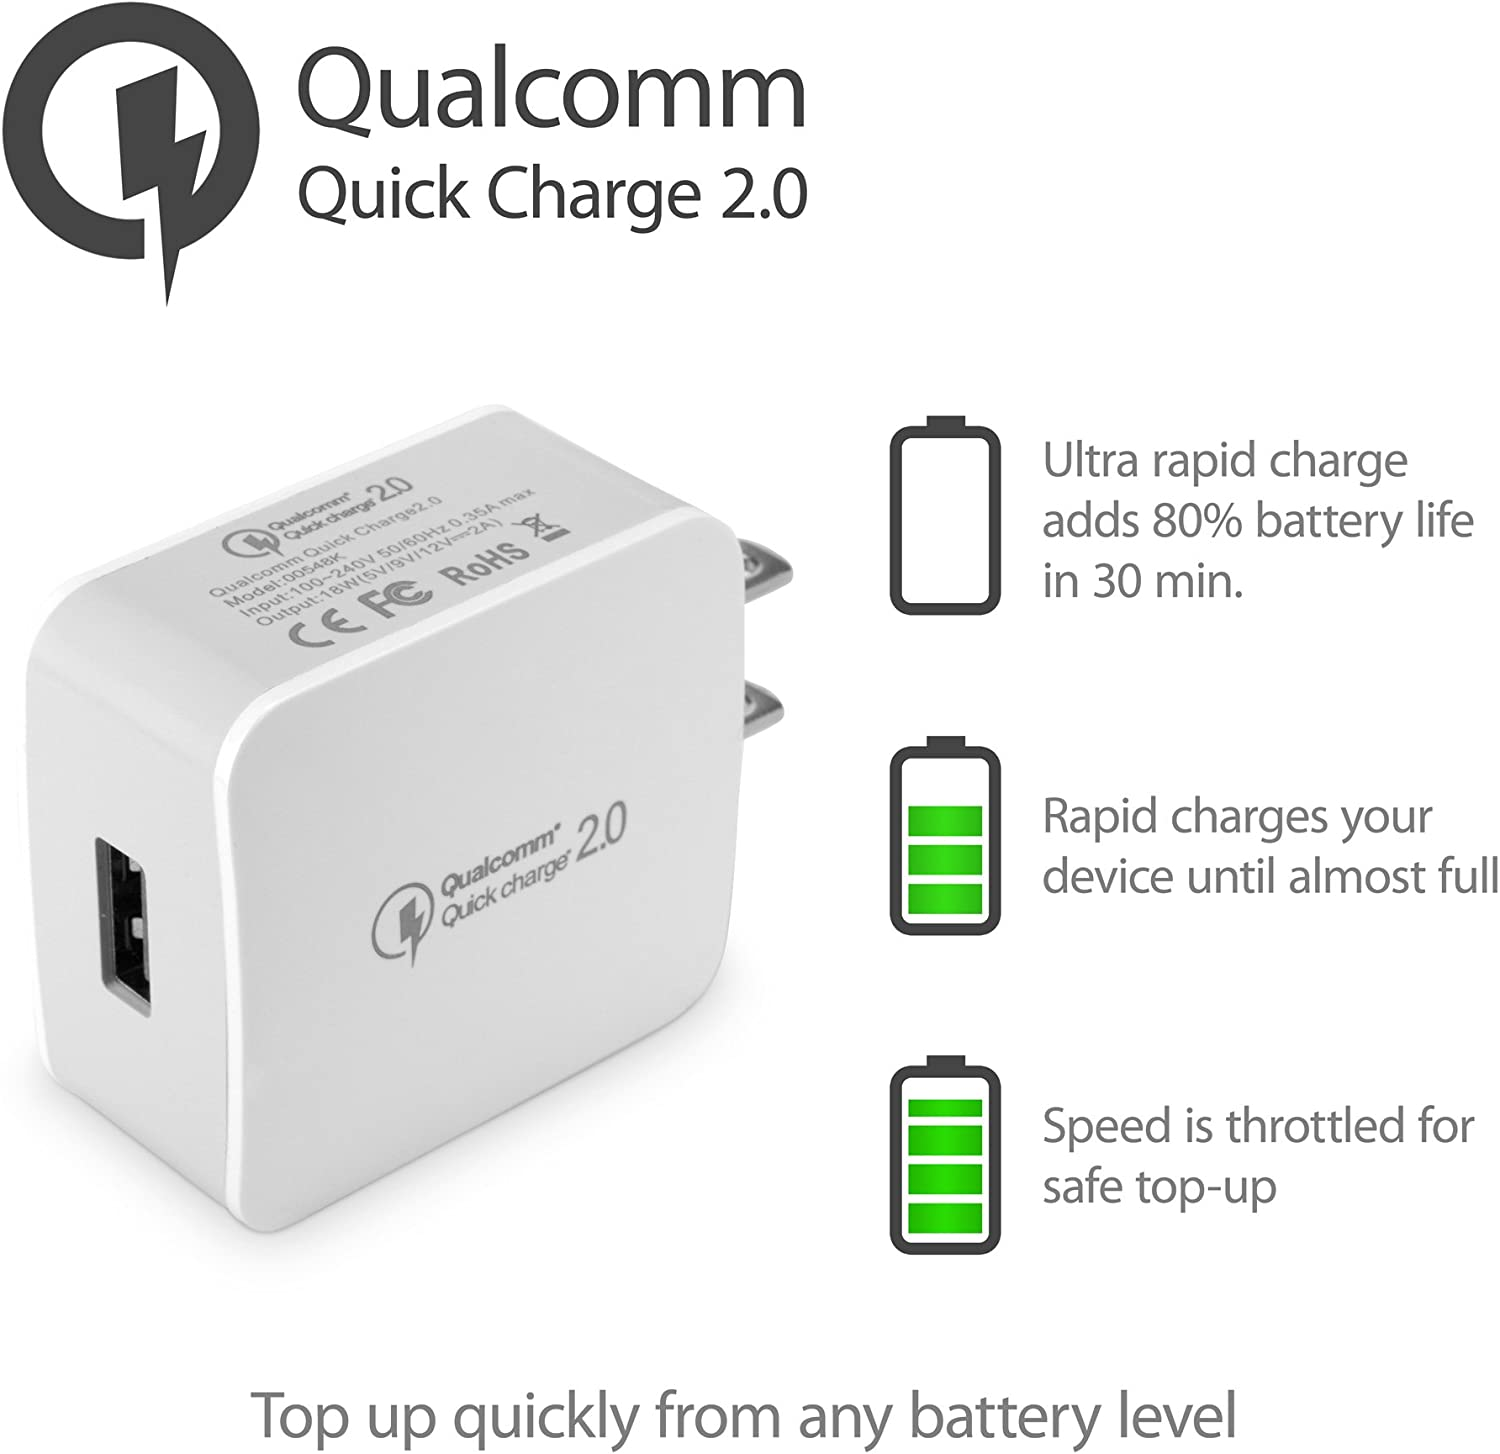 Rapidly Charge Your Qualcomm Compatible Device for BoxWave/® White Charger RapidCharge Qualcomm 2.0 Wall Charger